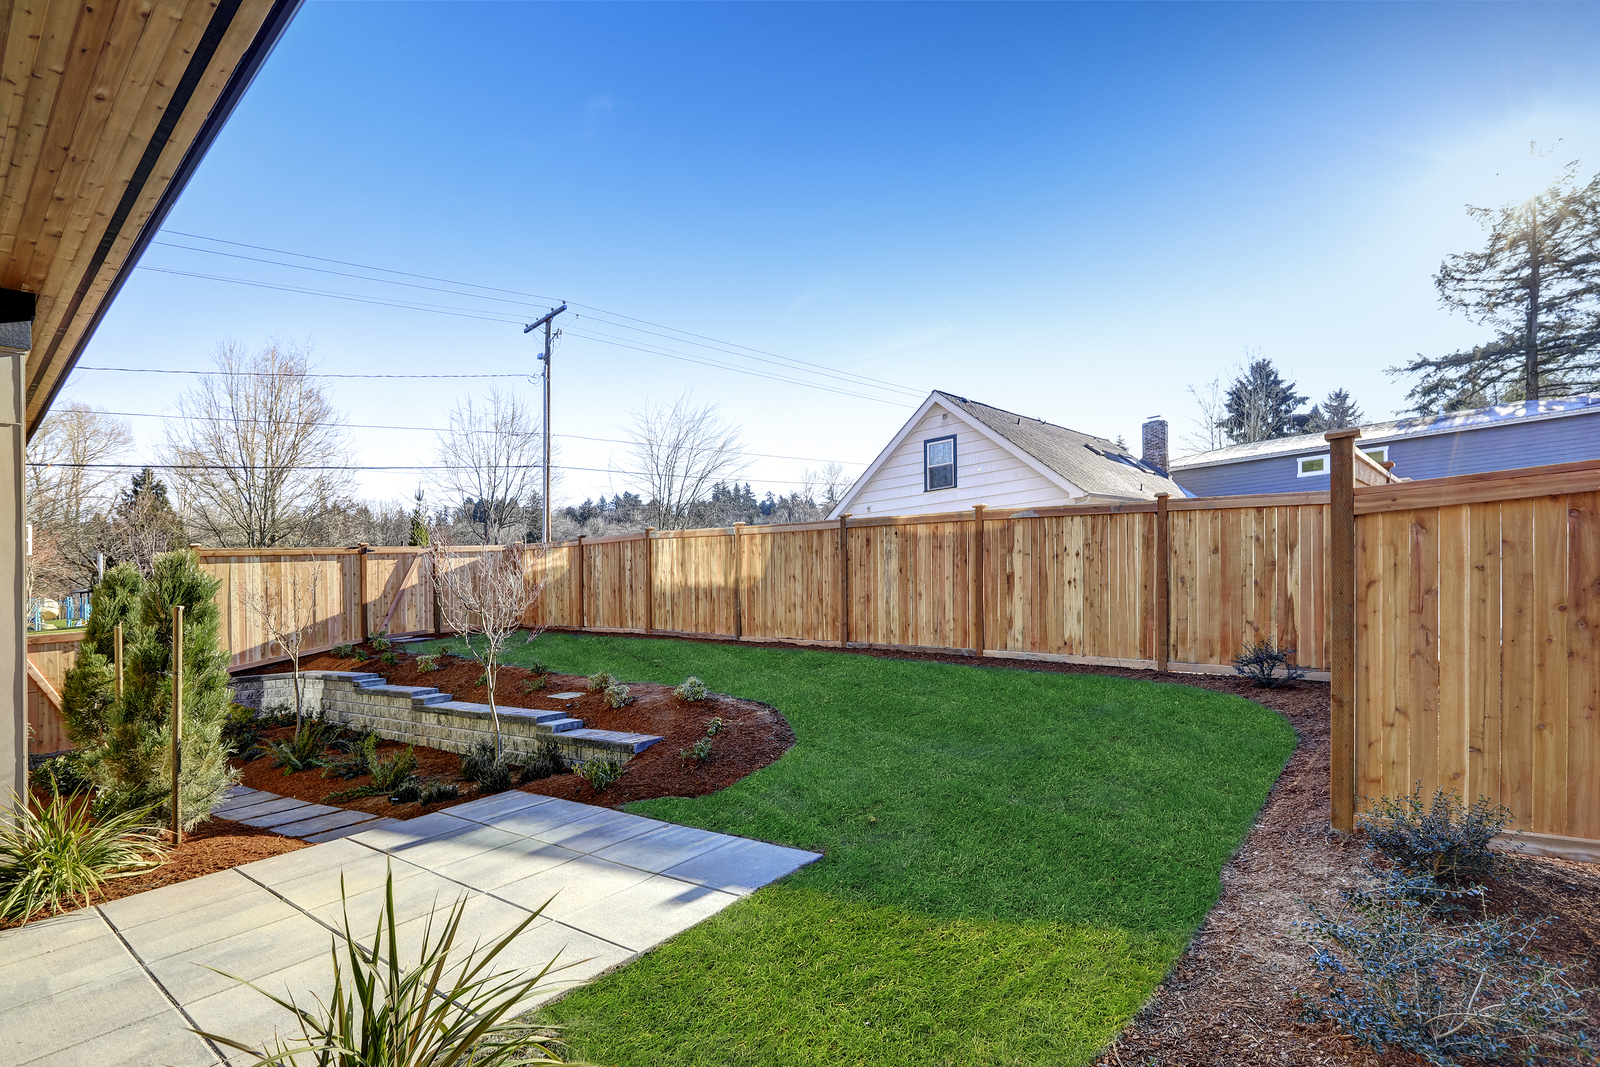 Sloped Backyard Surrounded By Wooden Fence Luxury New Constructi